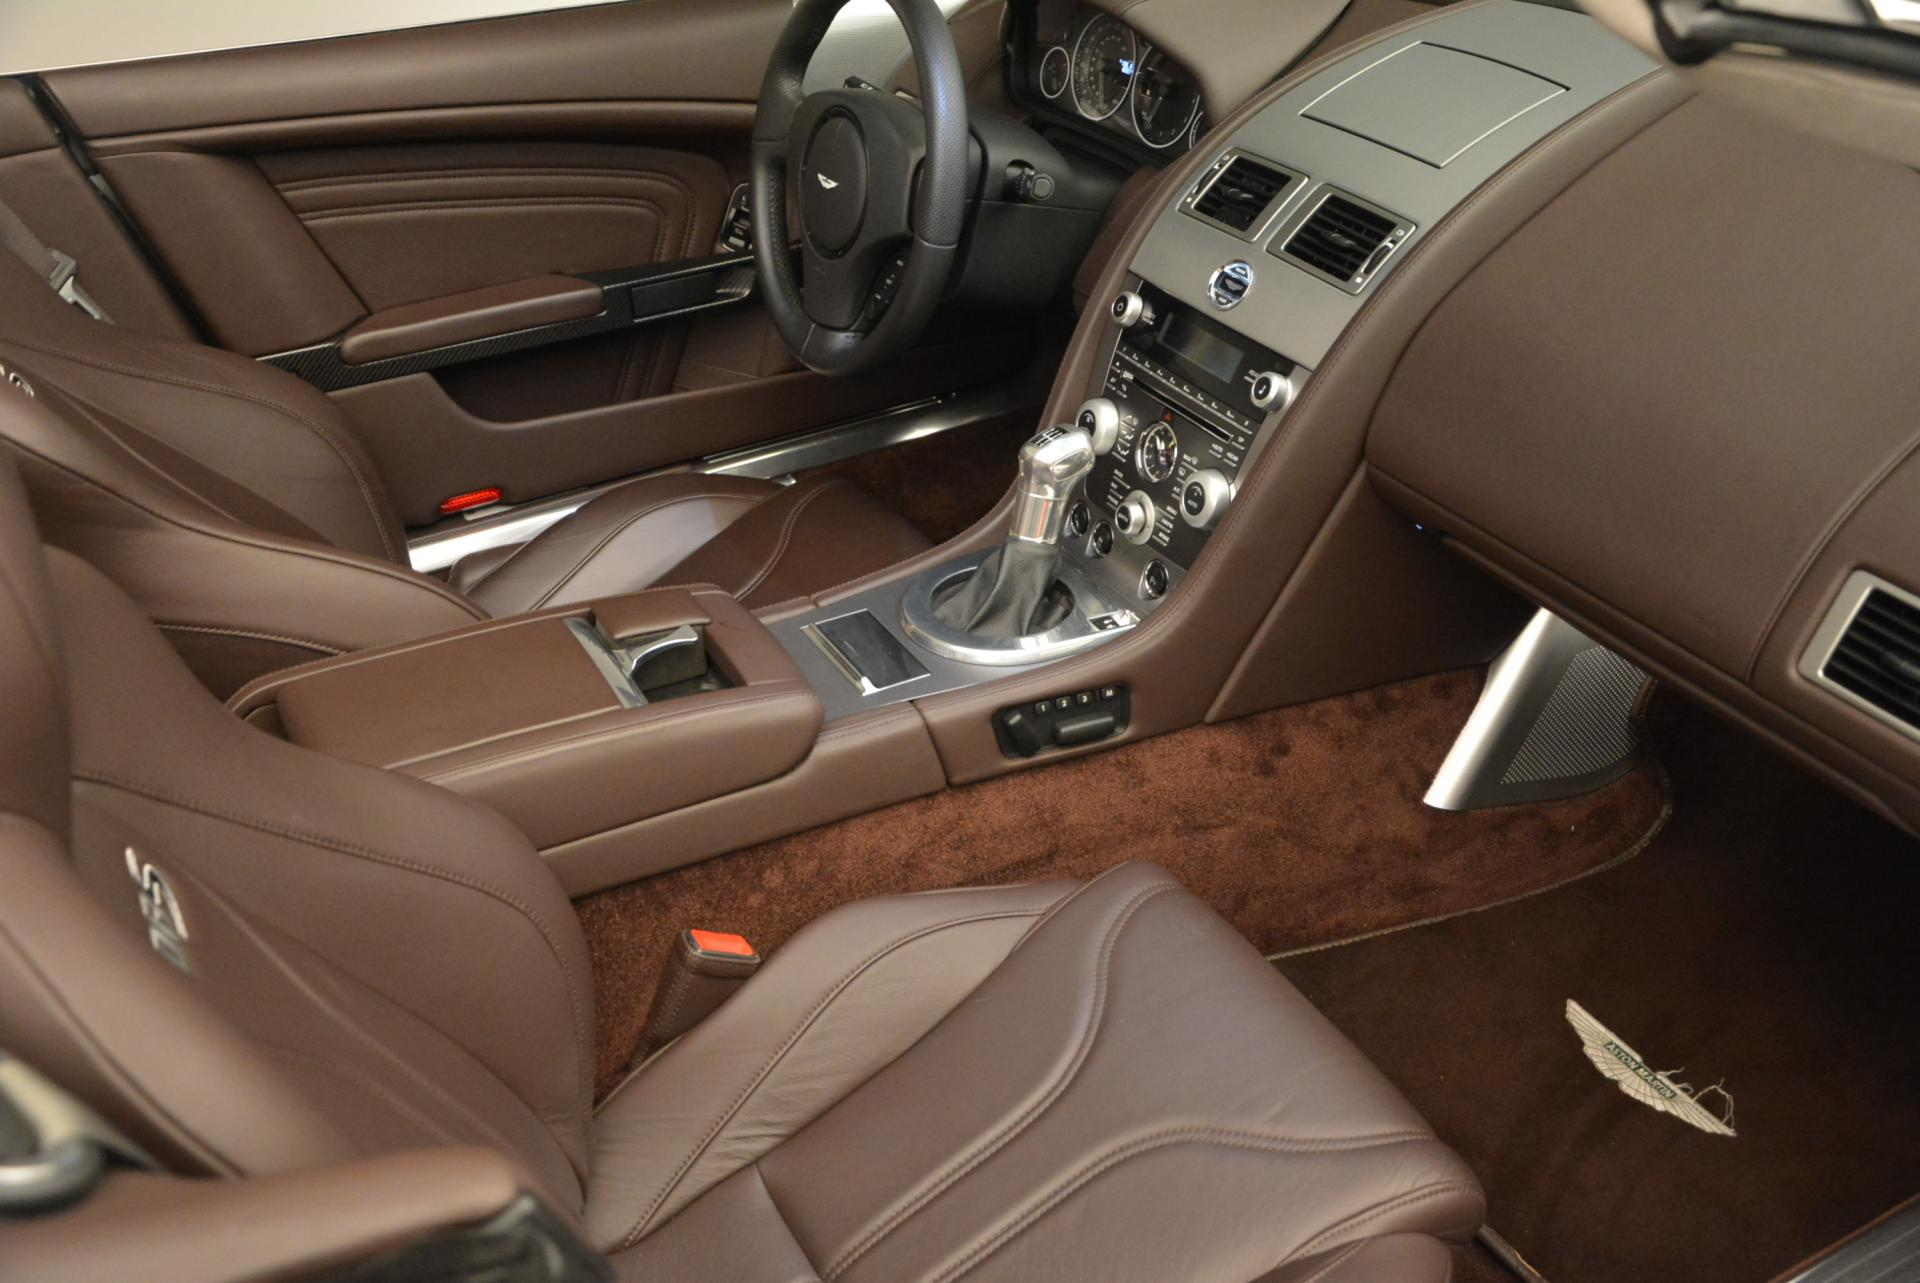 Used 2010 Aston Martin DBS Volante For Sale In Westport, CT 87_p35